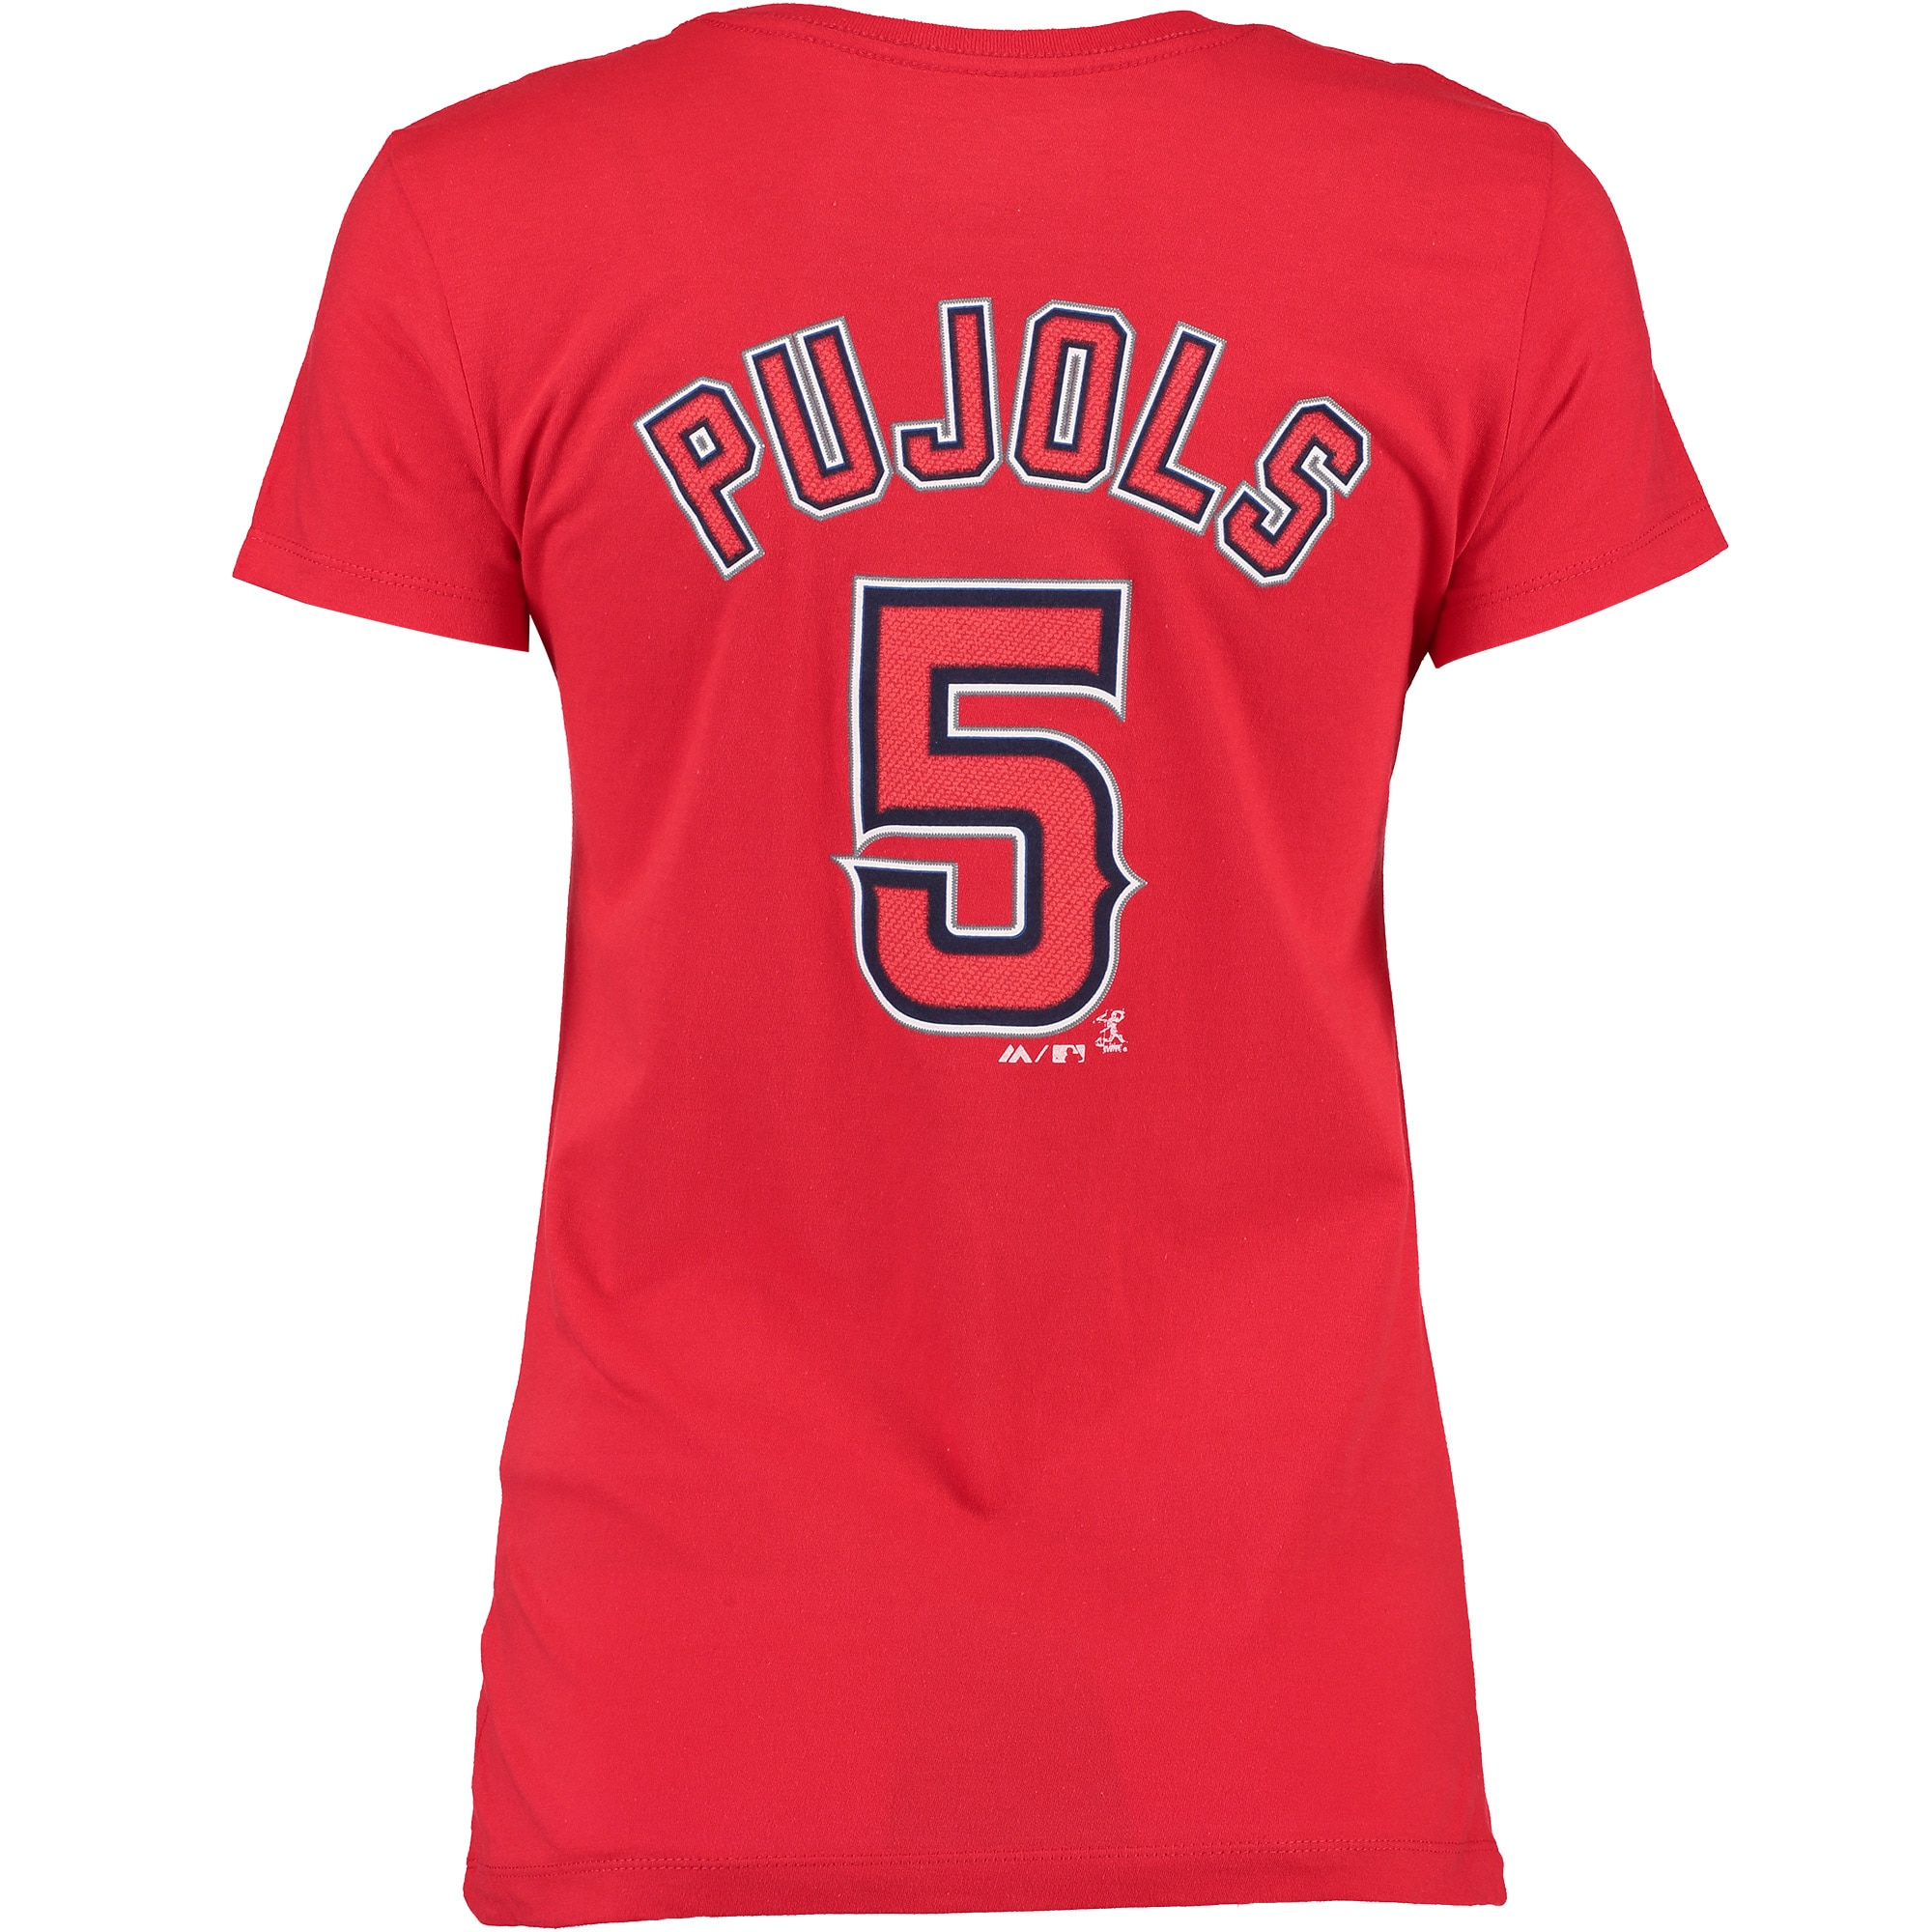 Los Angeles Angels LA baby shirt infant t-shirt sport customized personalized name and number child boy kid/'s shower